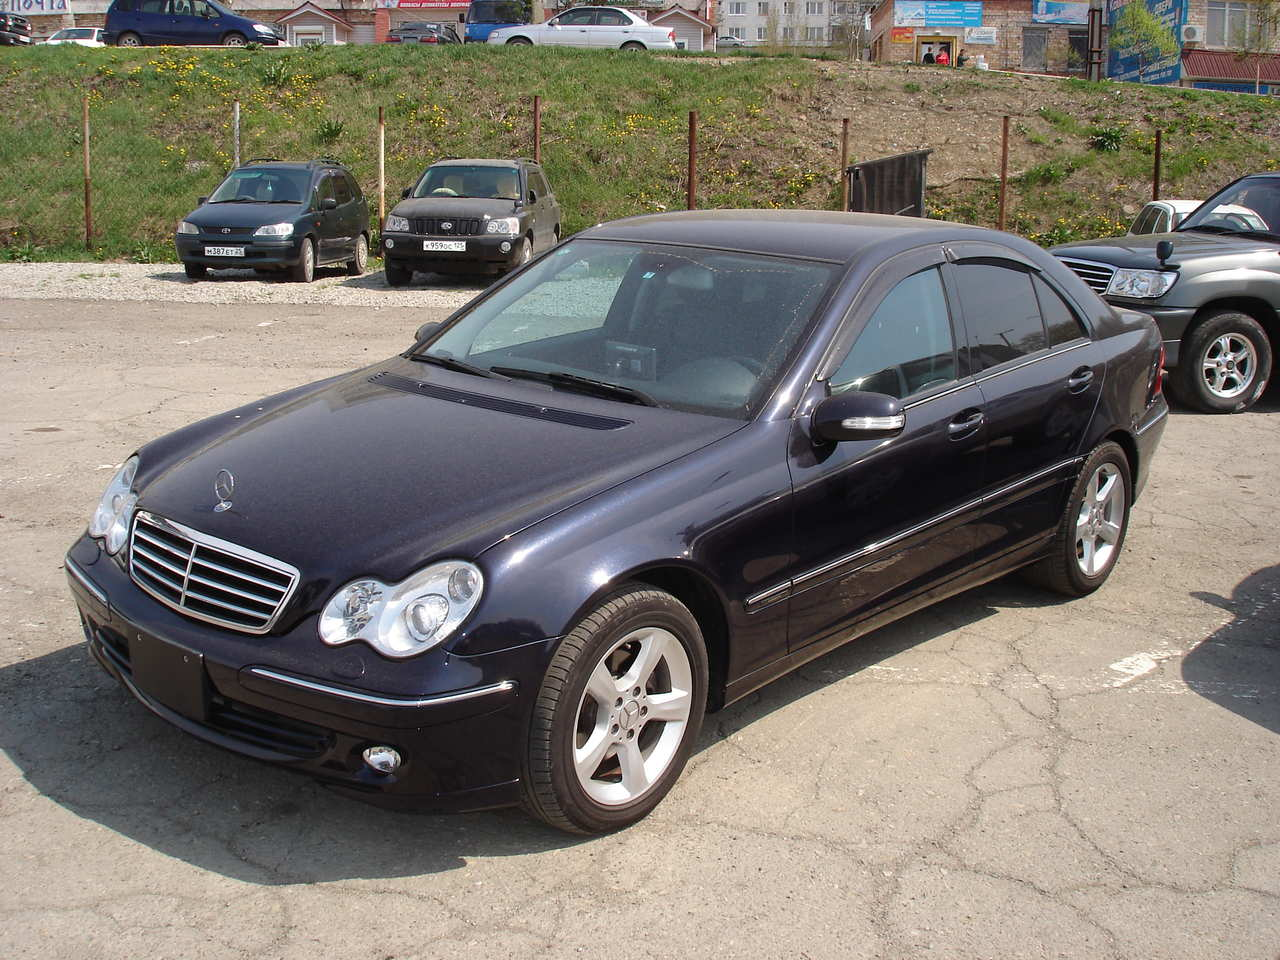 2006 mercedes benz c class image 15 for Mercedes benz c300 2006